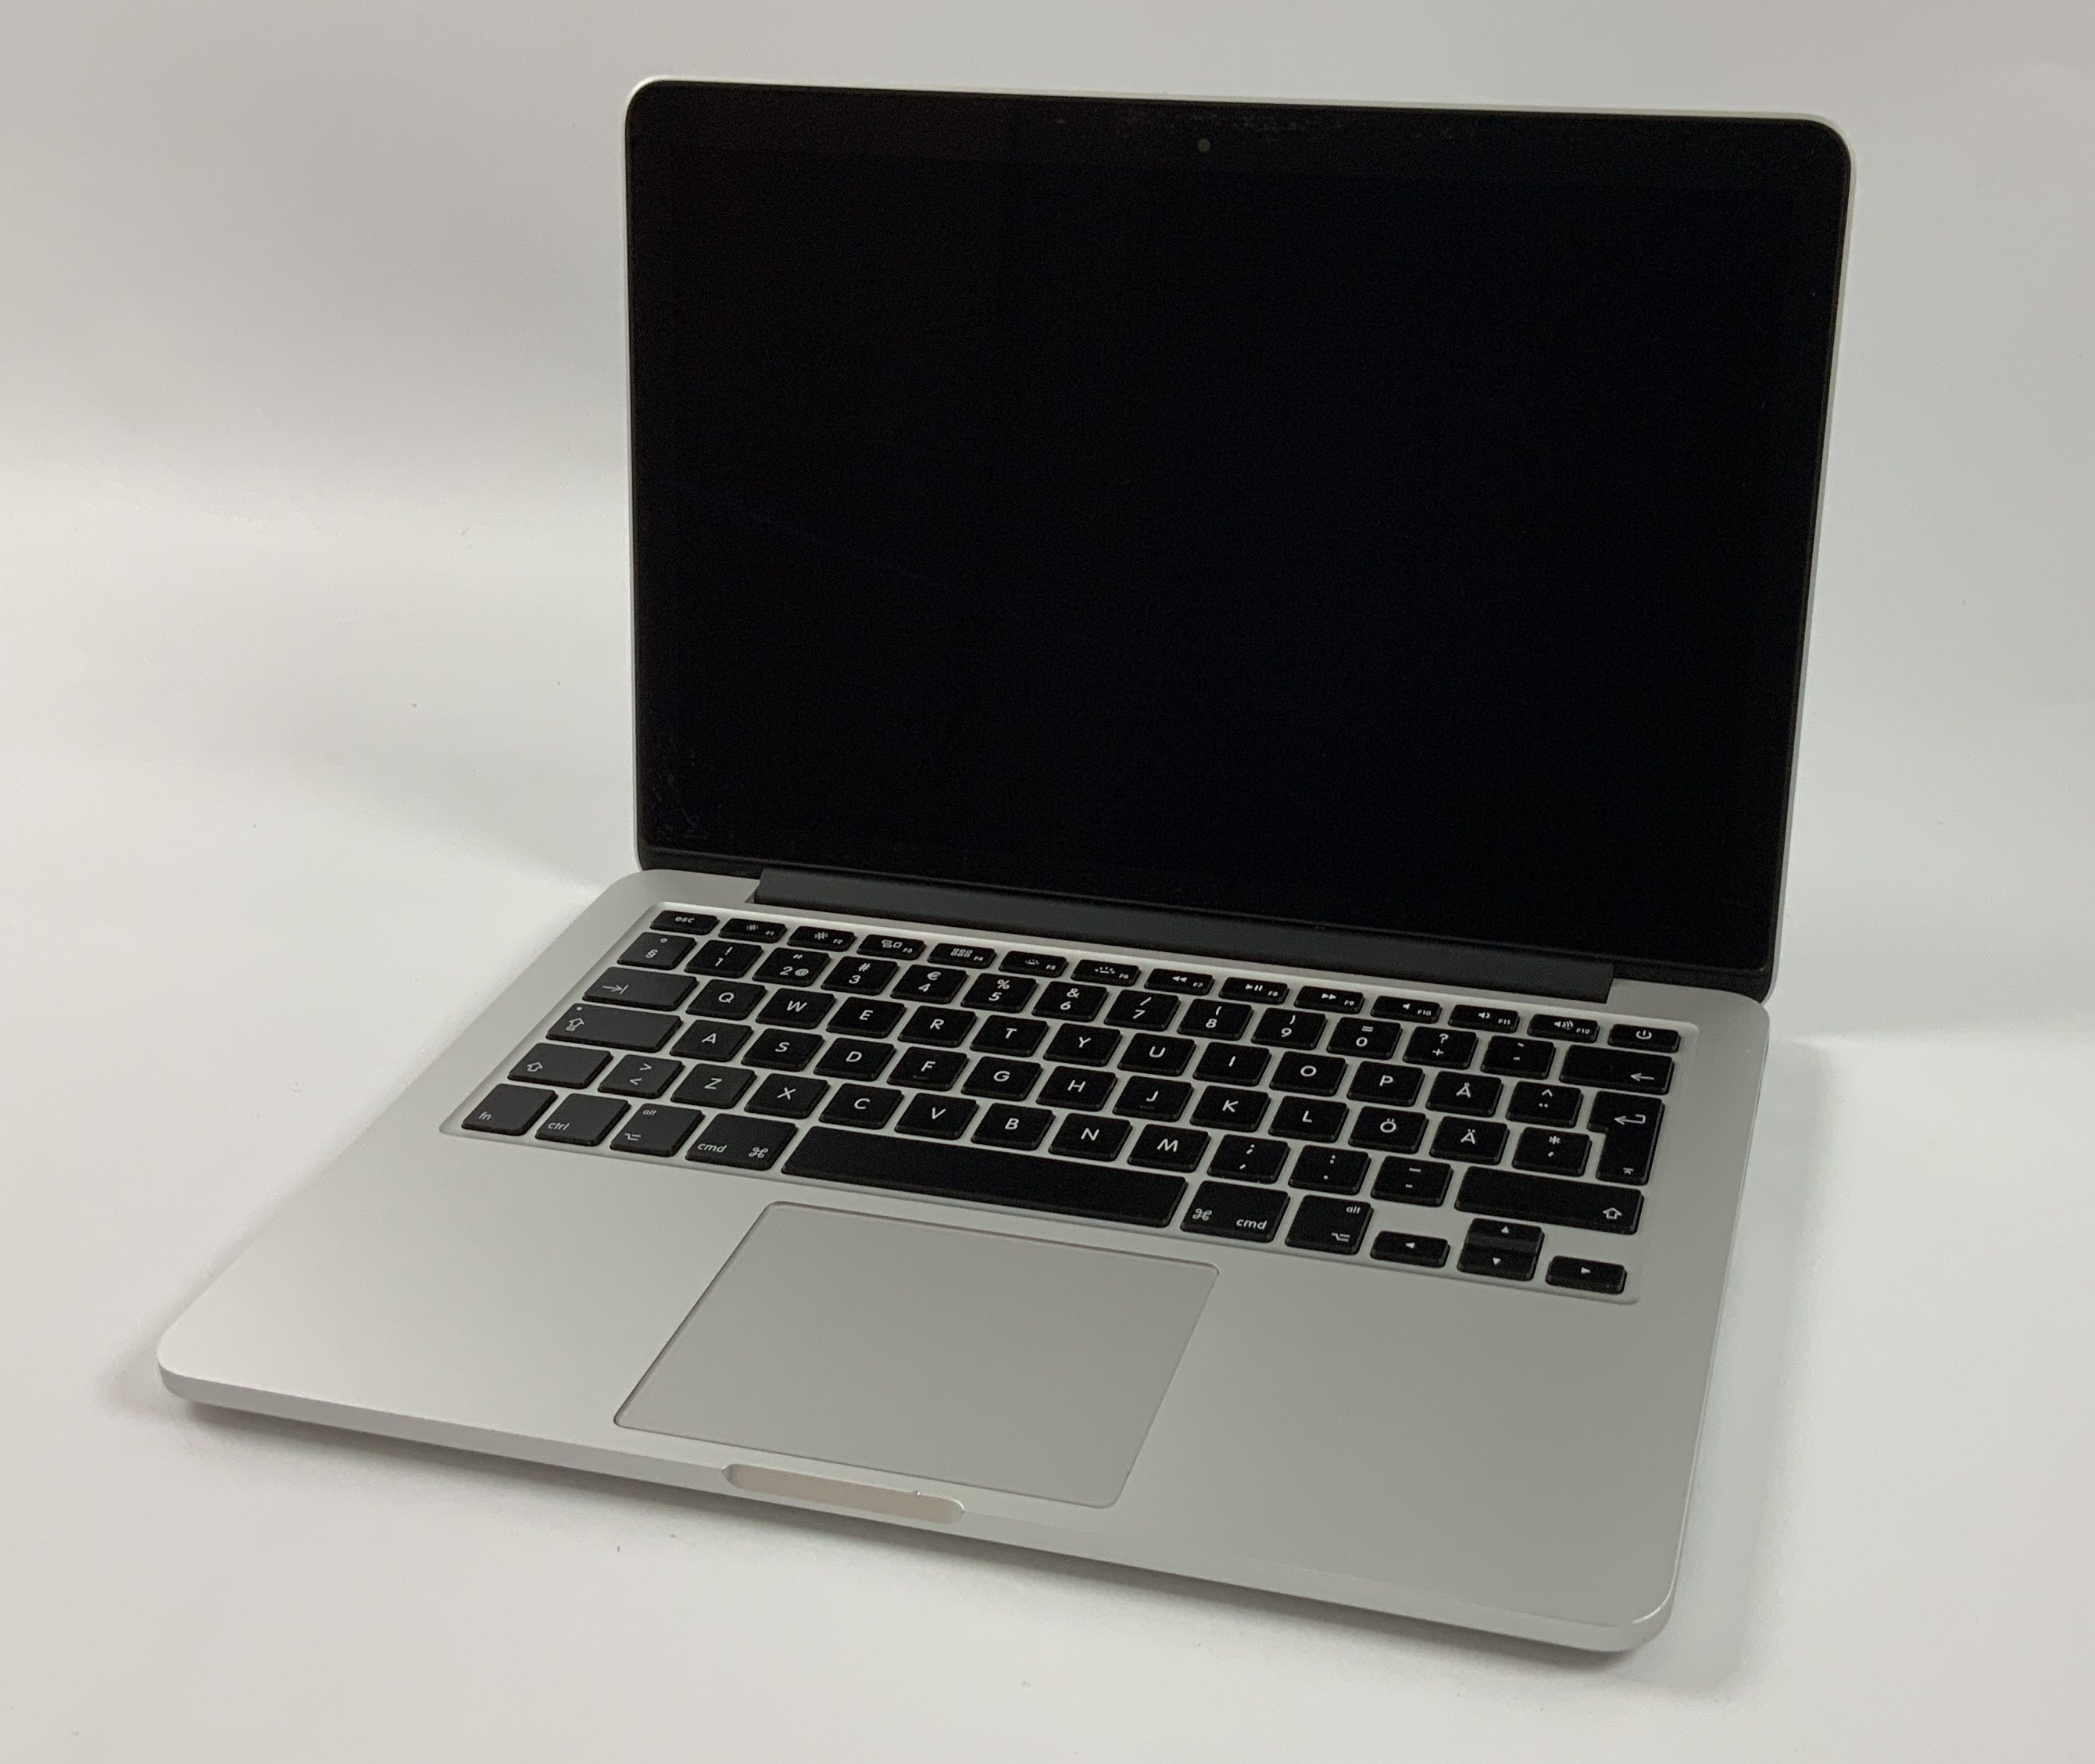 "MacBook Pro Retina 13"" Early 2015 (Intel Core i5 2.9 GHz 8 GB RAM 512 GB SSD), Intel Core i5 2.9 GHz, 8 GB RAM, 512 GB SSD, immagine 1"